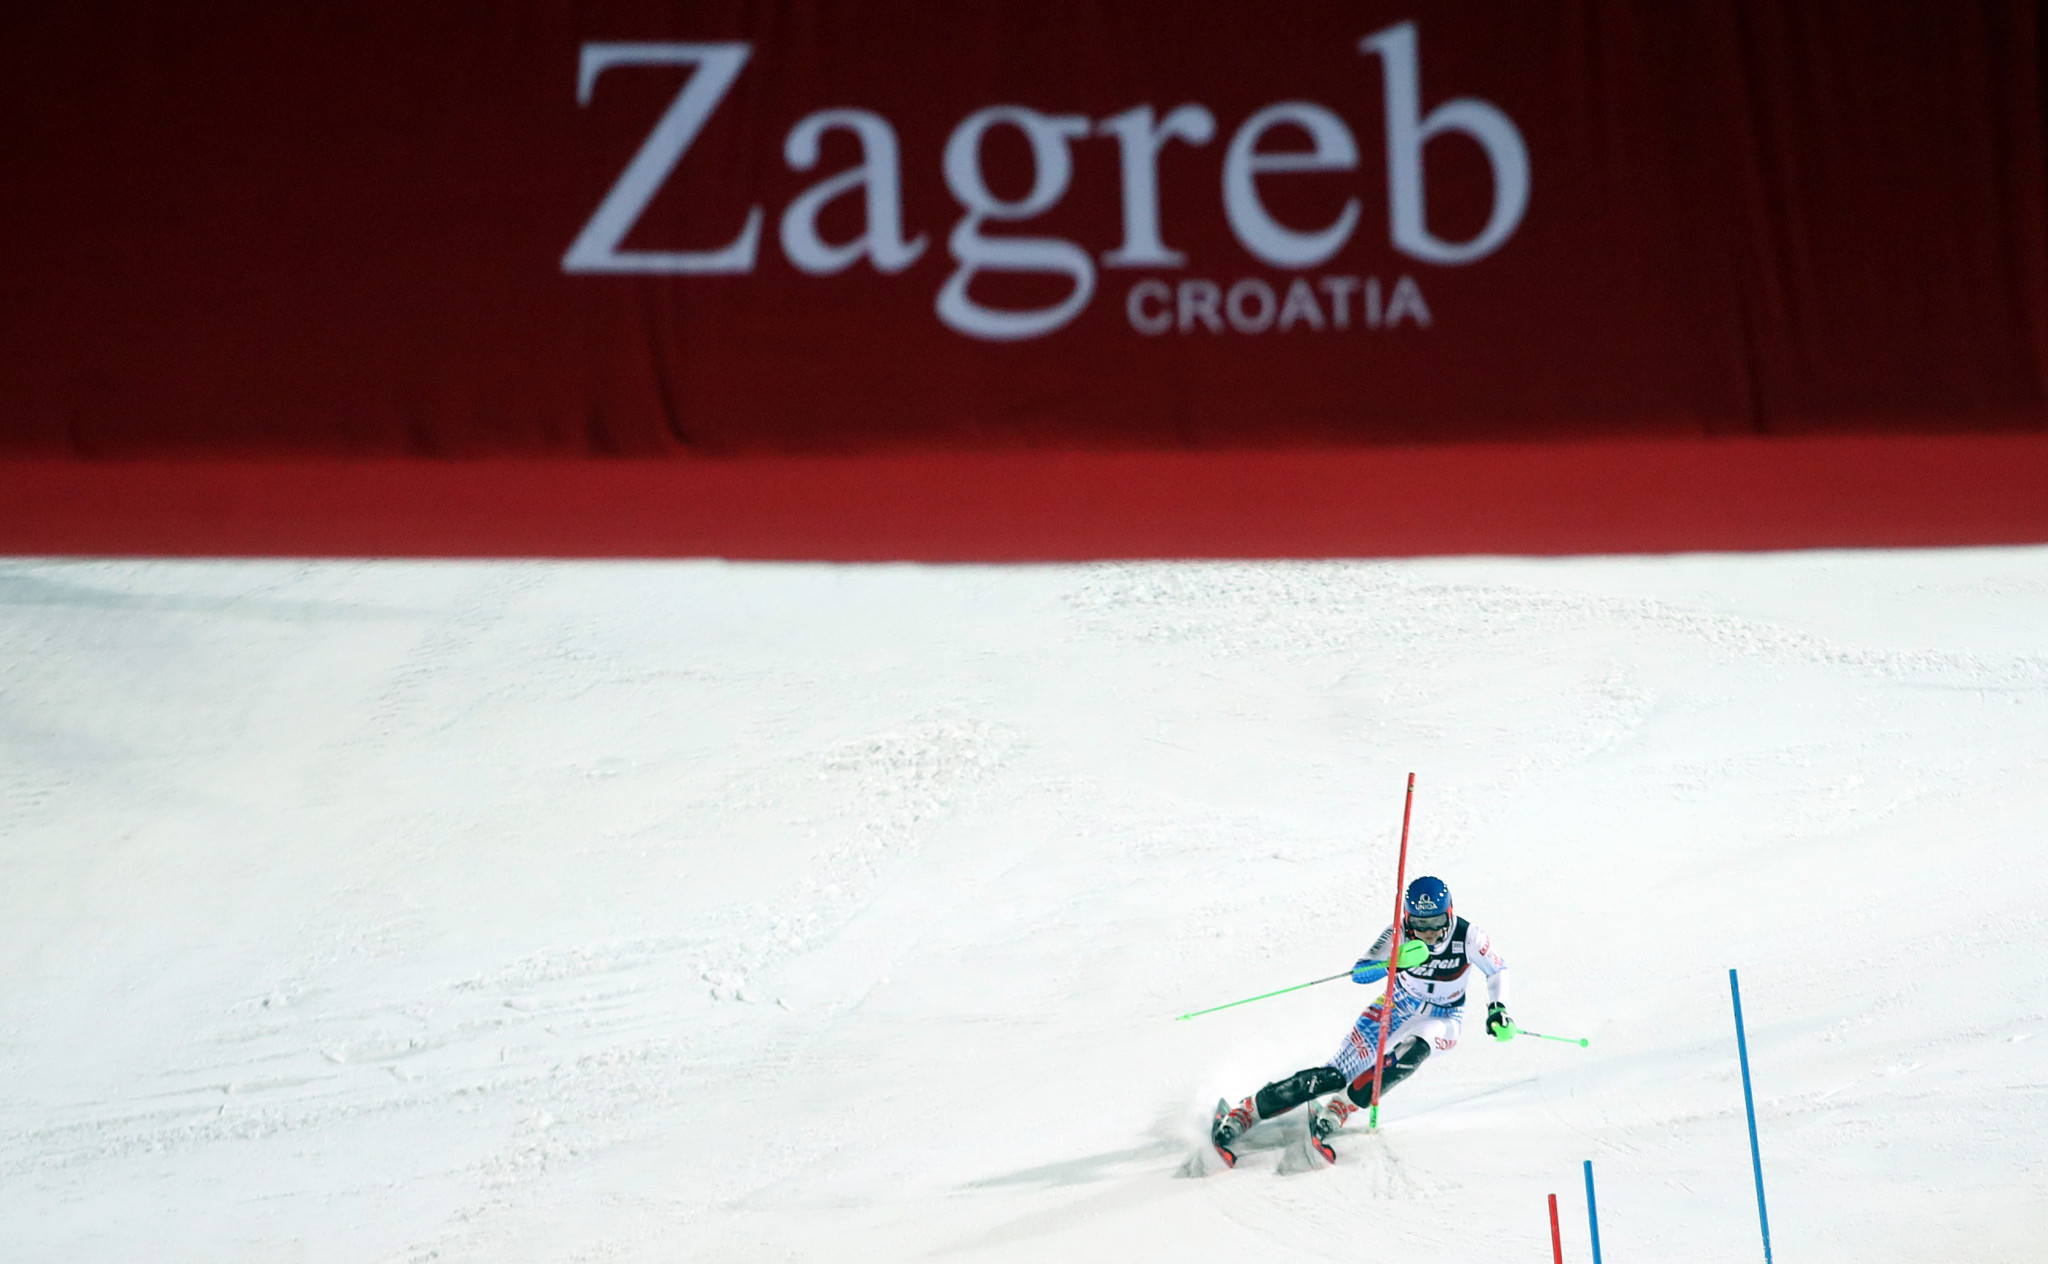 FIS Alpine Ski World Cup event in Zagreb to take place despite recent earthquake